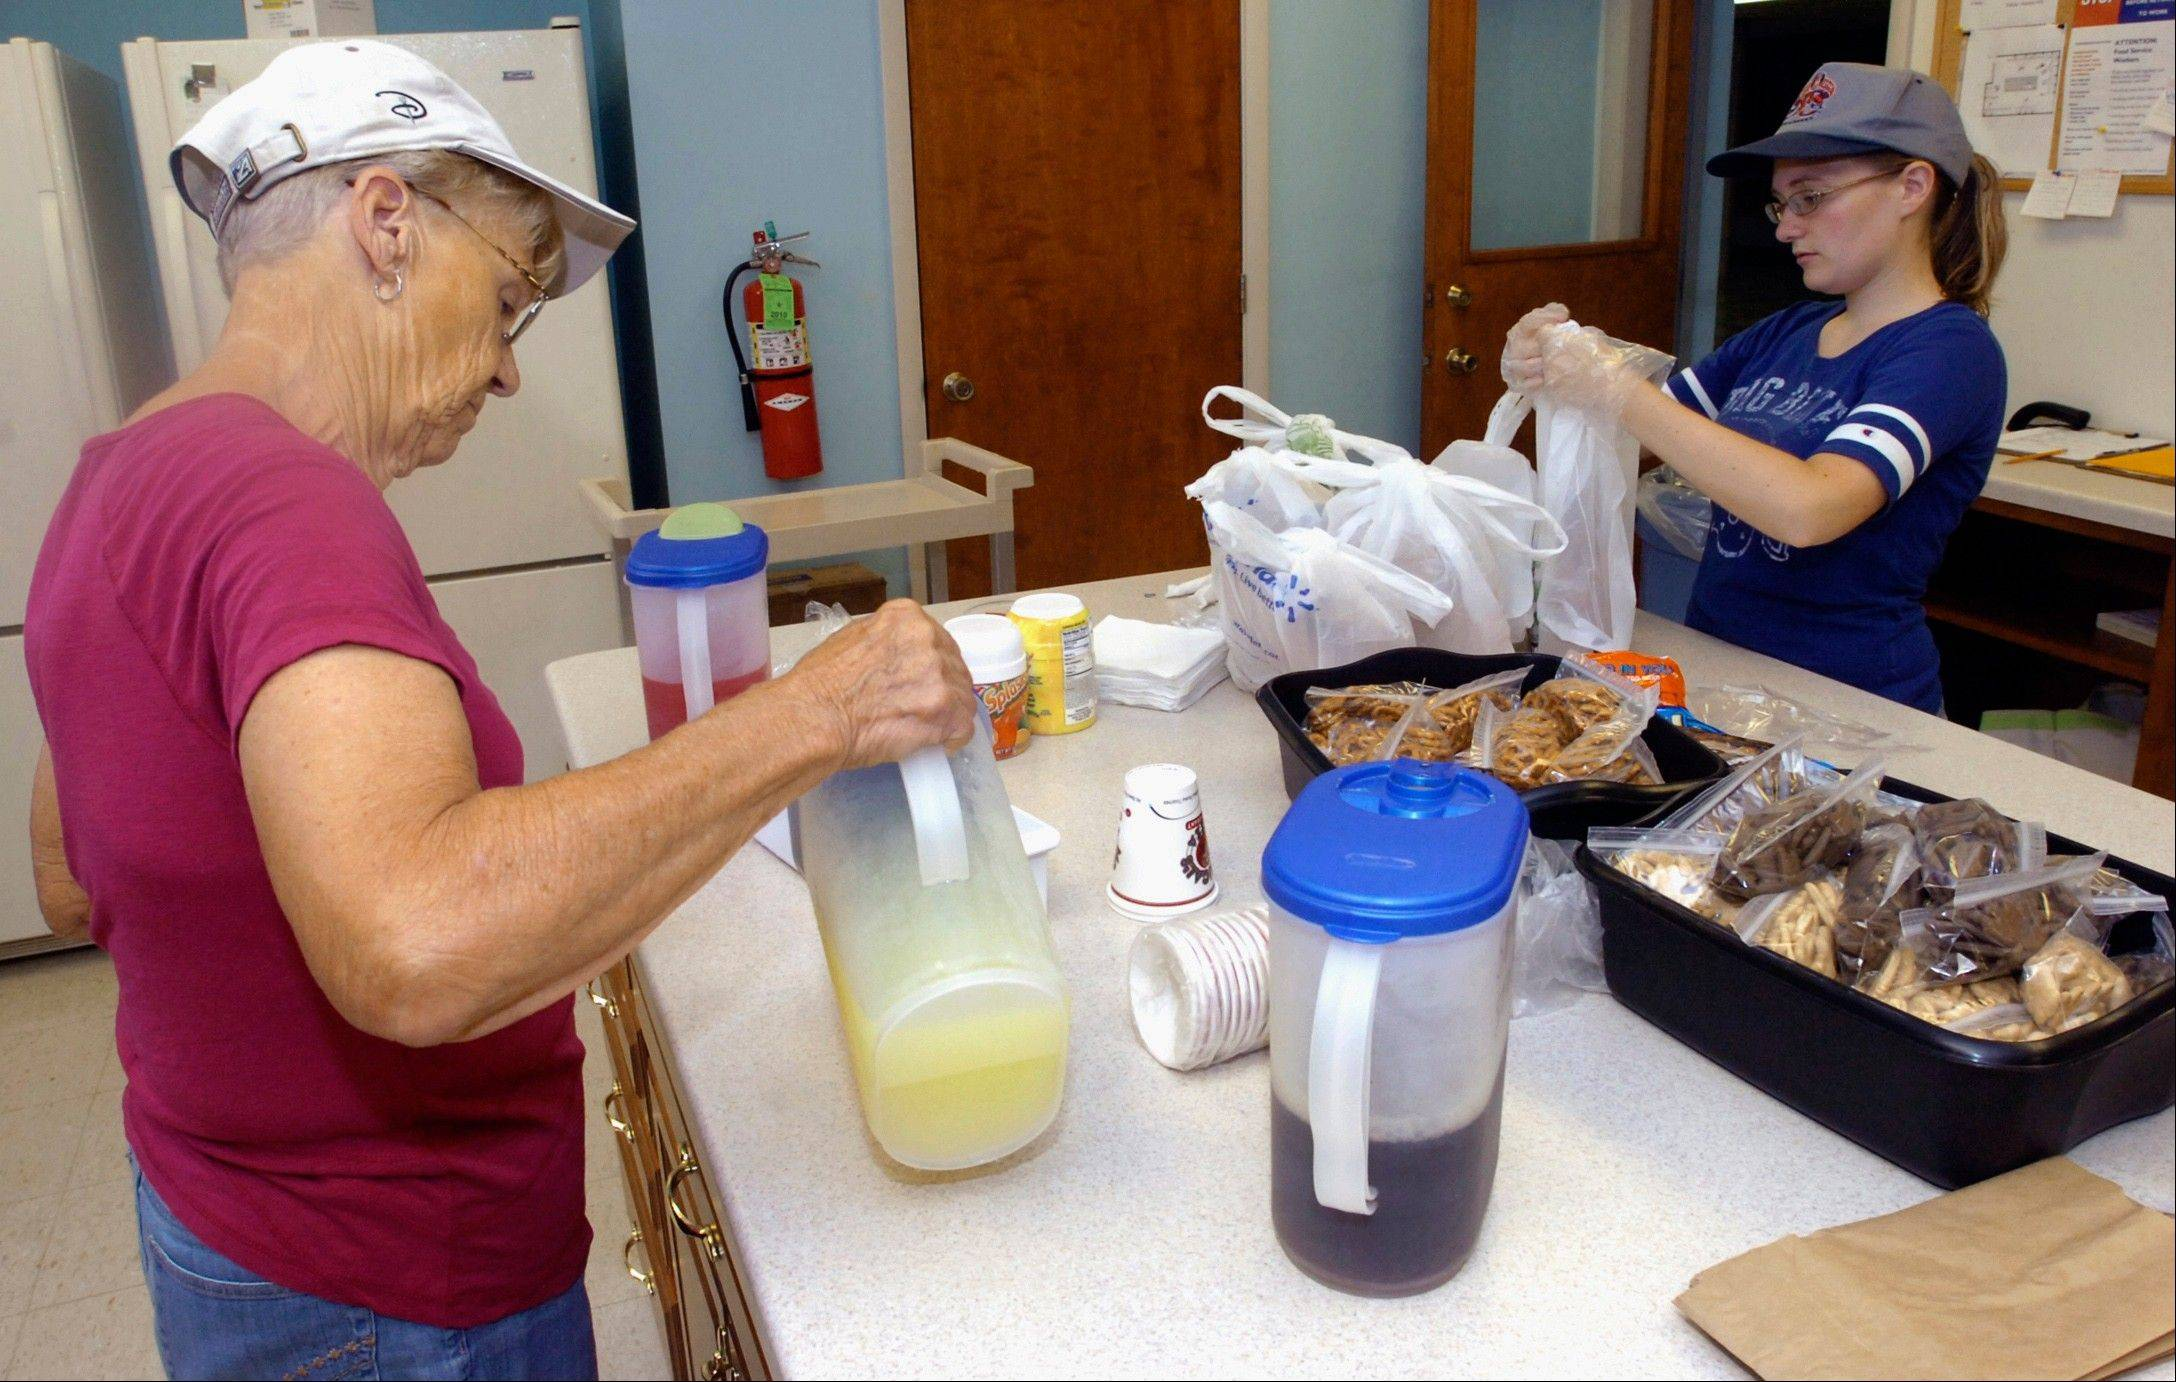 Volunteers Gail Bower and Katie Stoltz fill drinks and put the finishing touches on lunches-to-go at the Soup Stop in the basement of the First Presbyterian Church in Charleston, Ill. The idea for this soup kitchen-style non-profit group was conceived by Rev. Susan Reichenberg as a way to serve those who might otherwise go hungry.